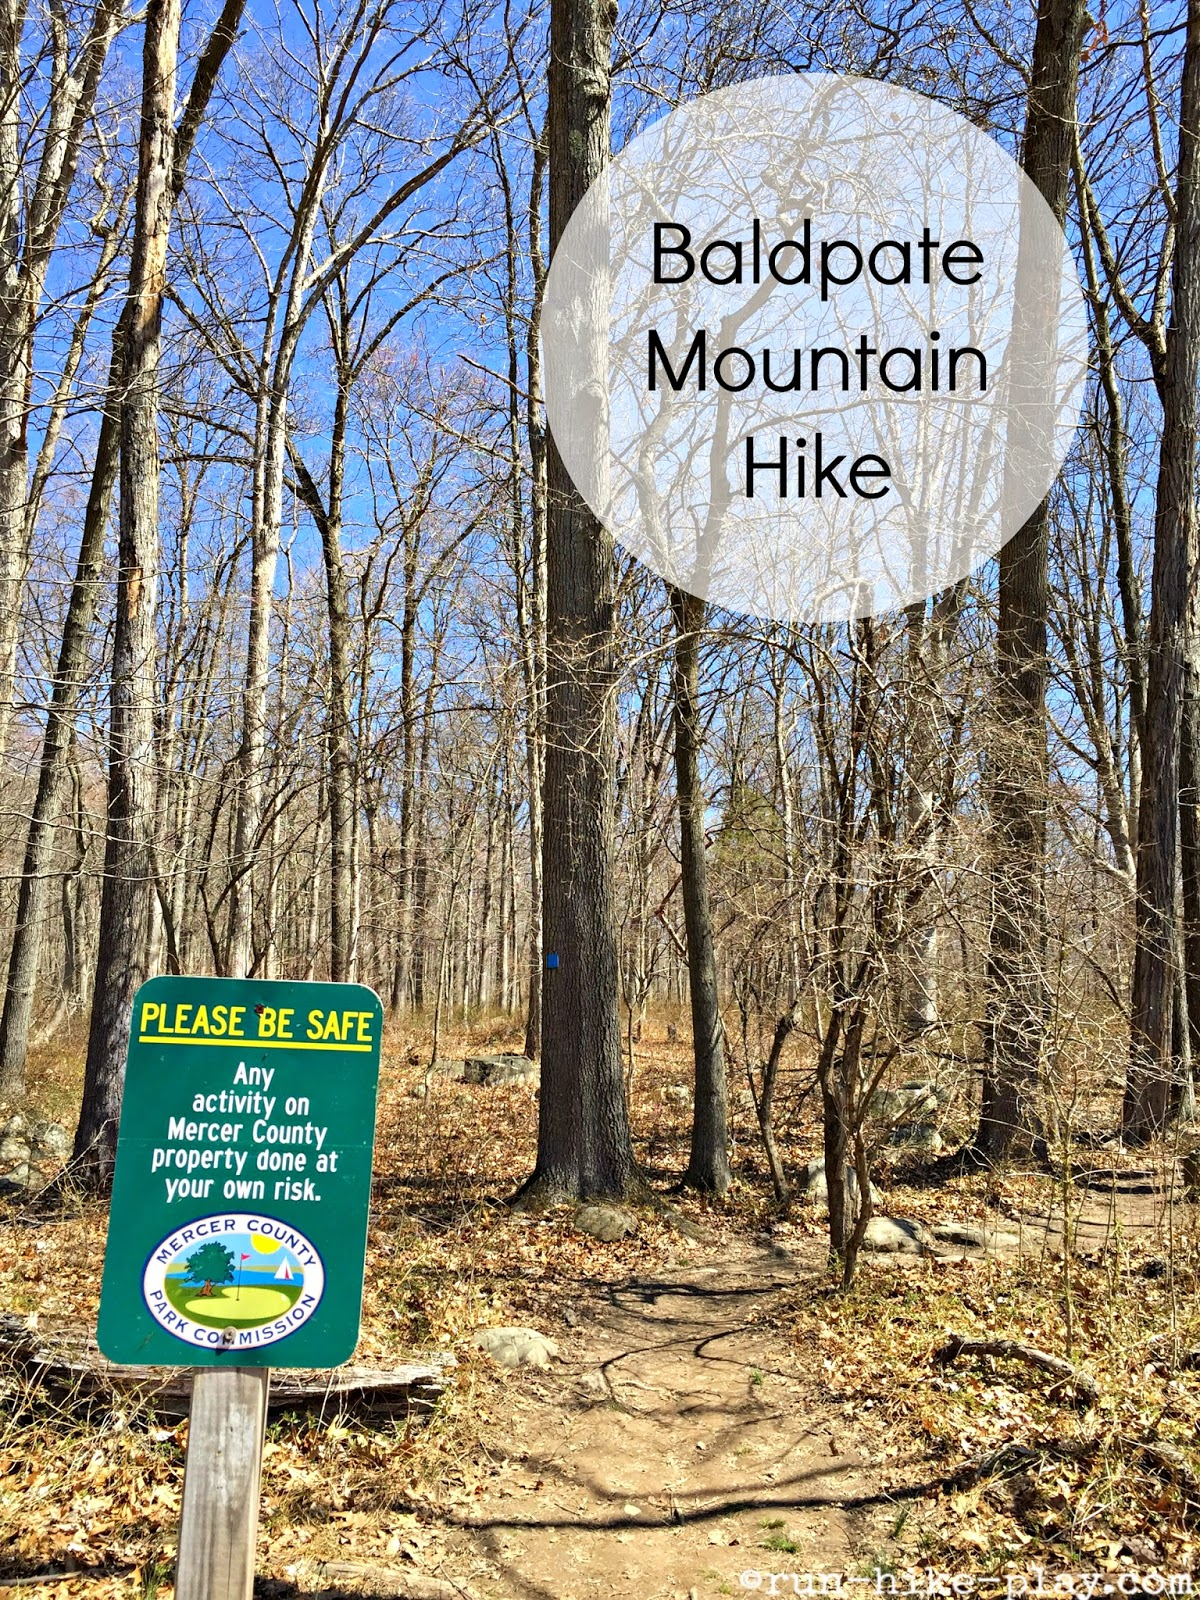 Baldpate Mountain Hike